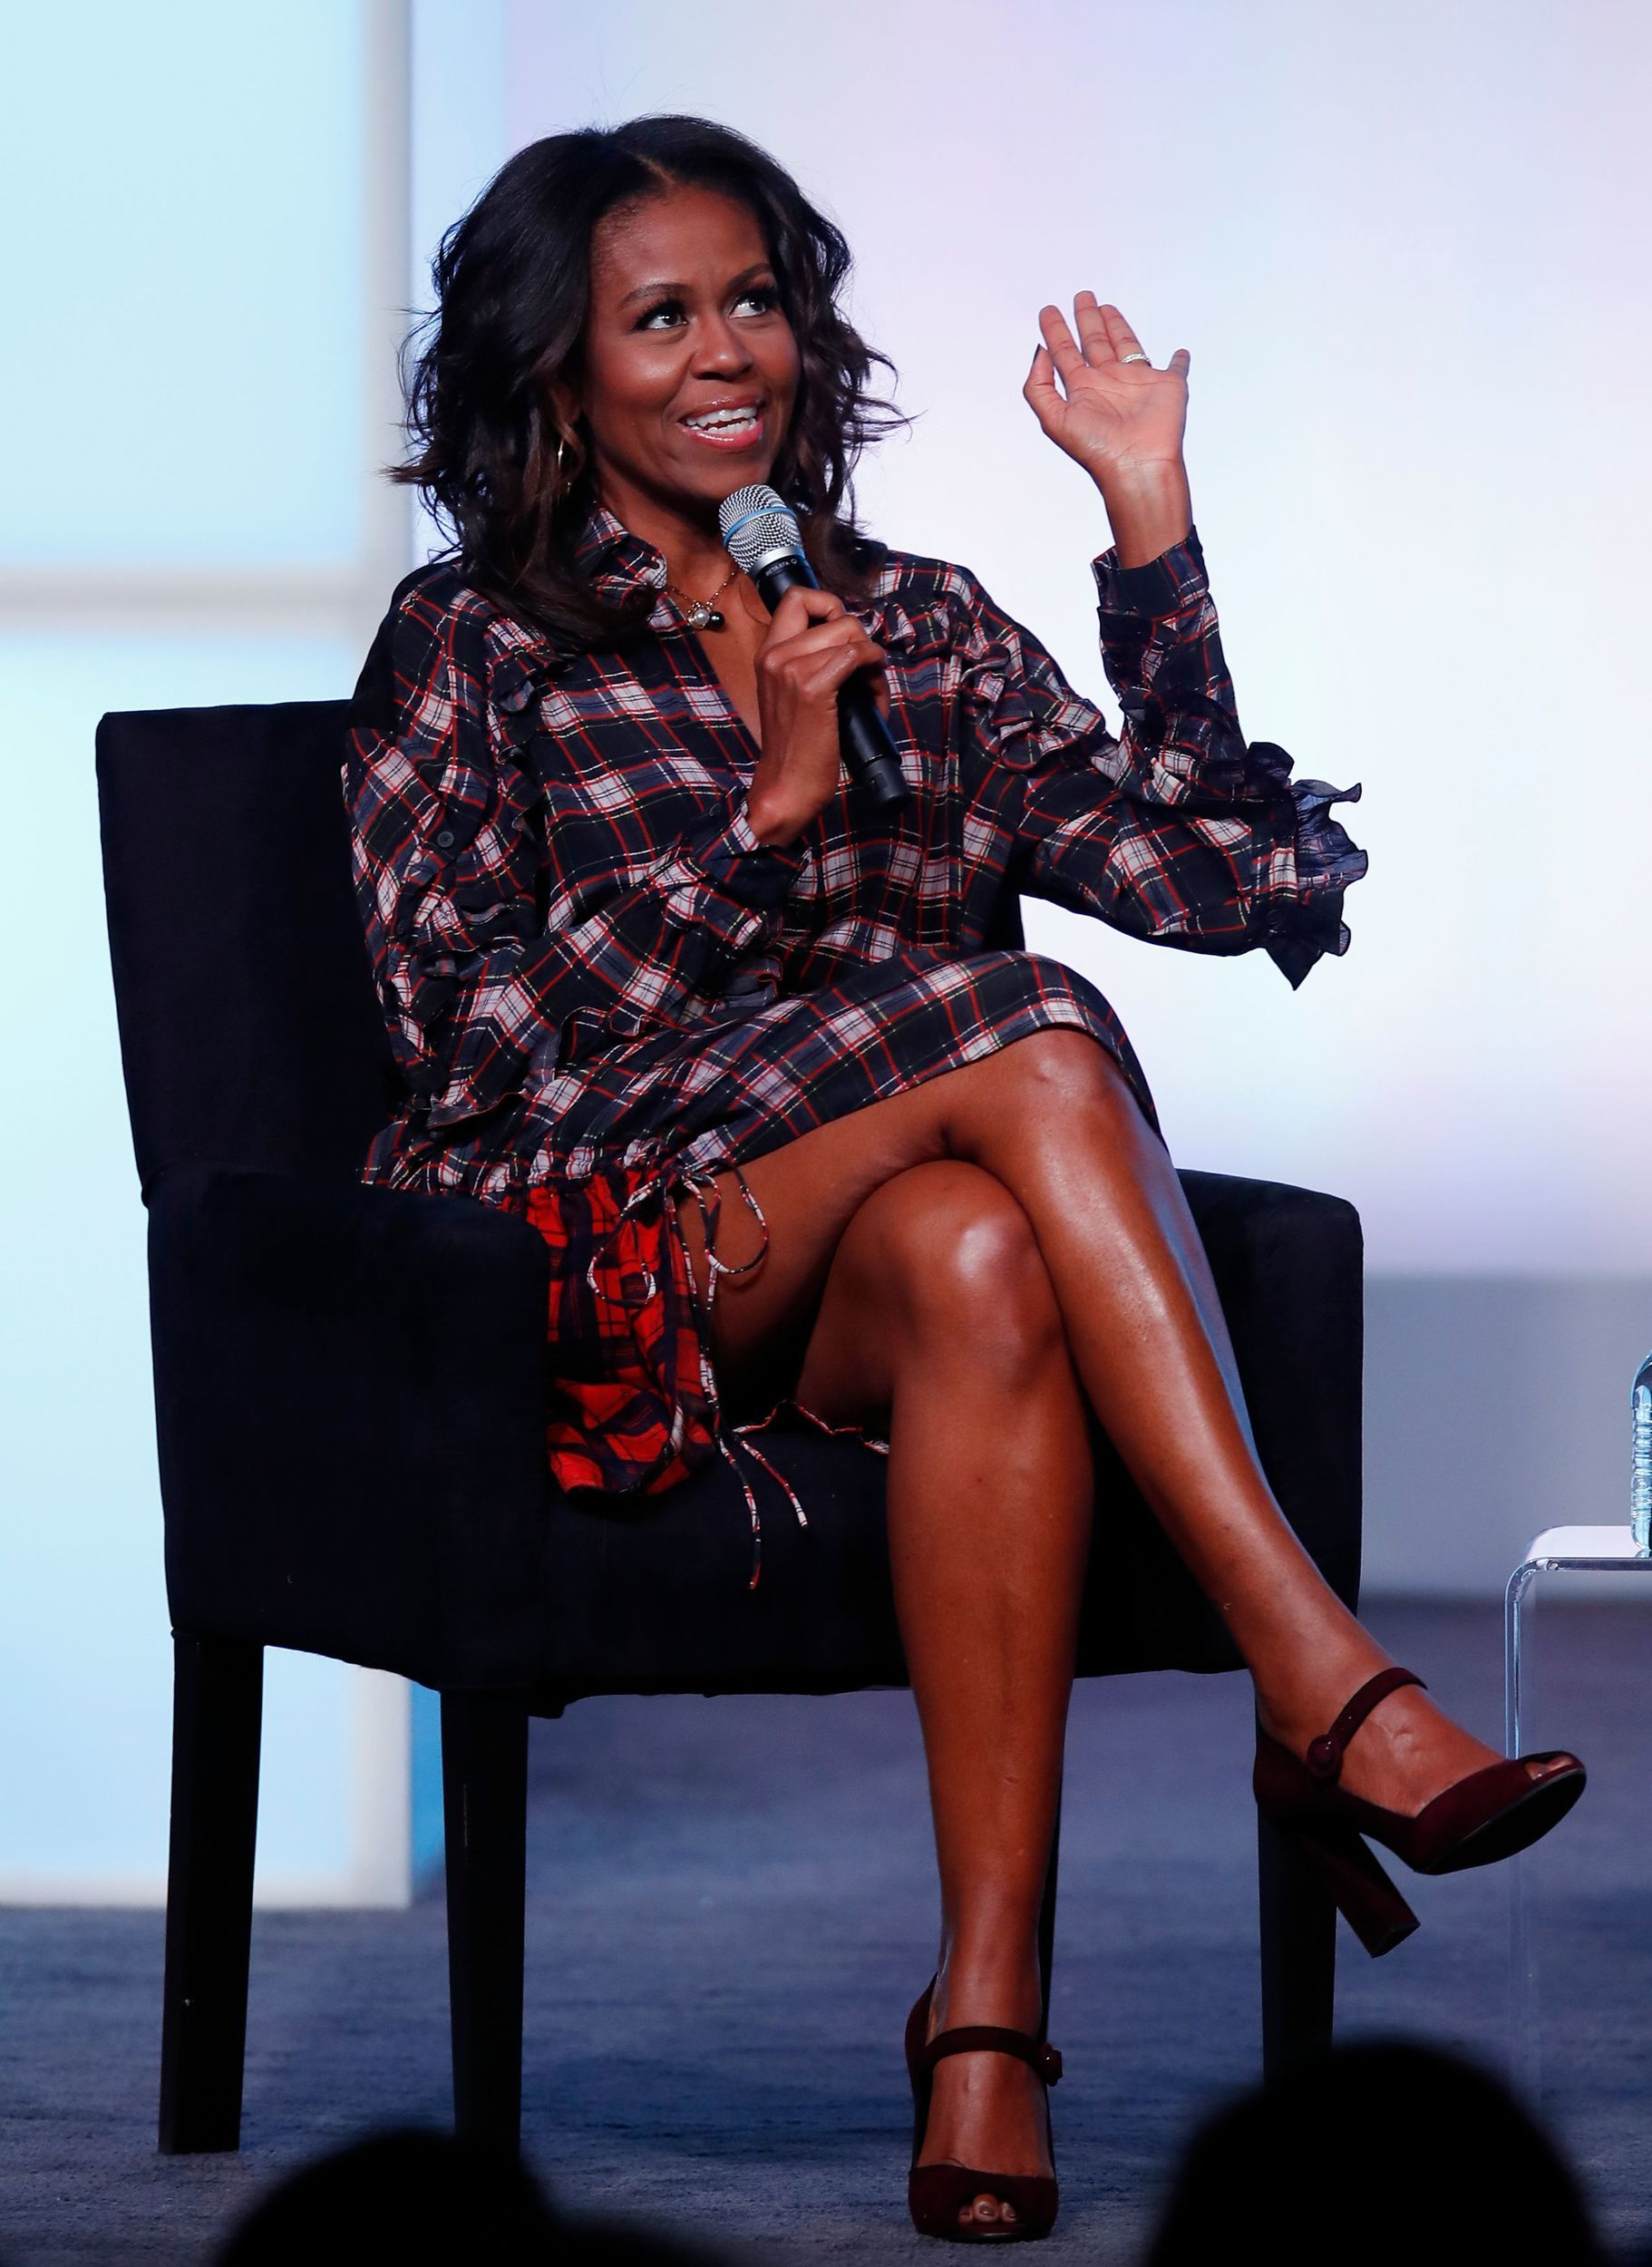 Hot Michelle Obama nude photos 2019